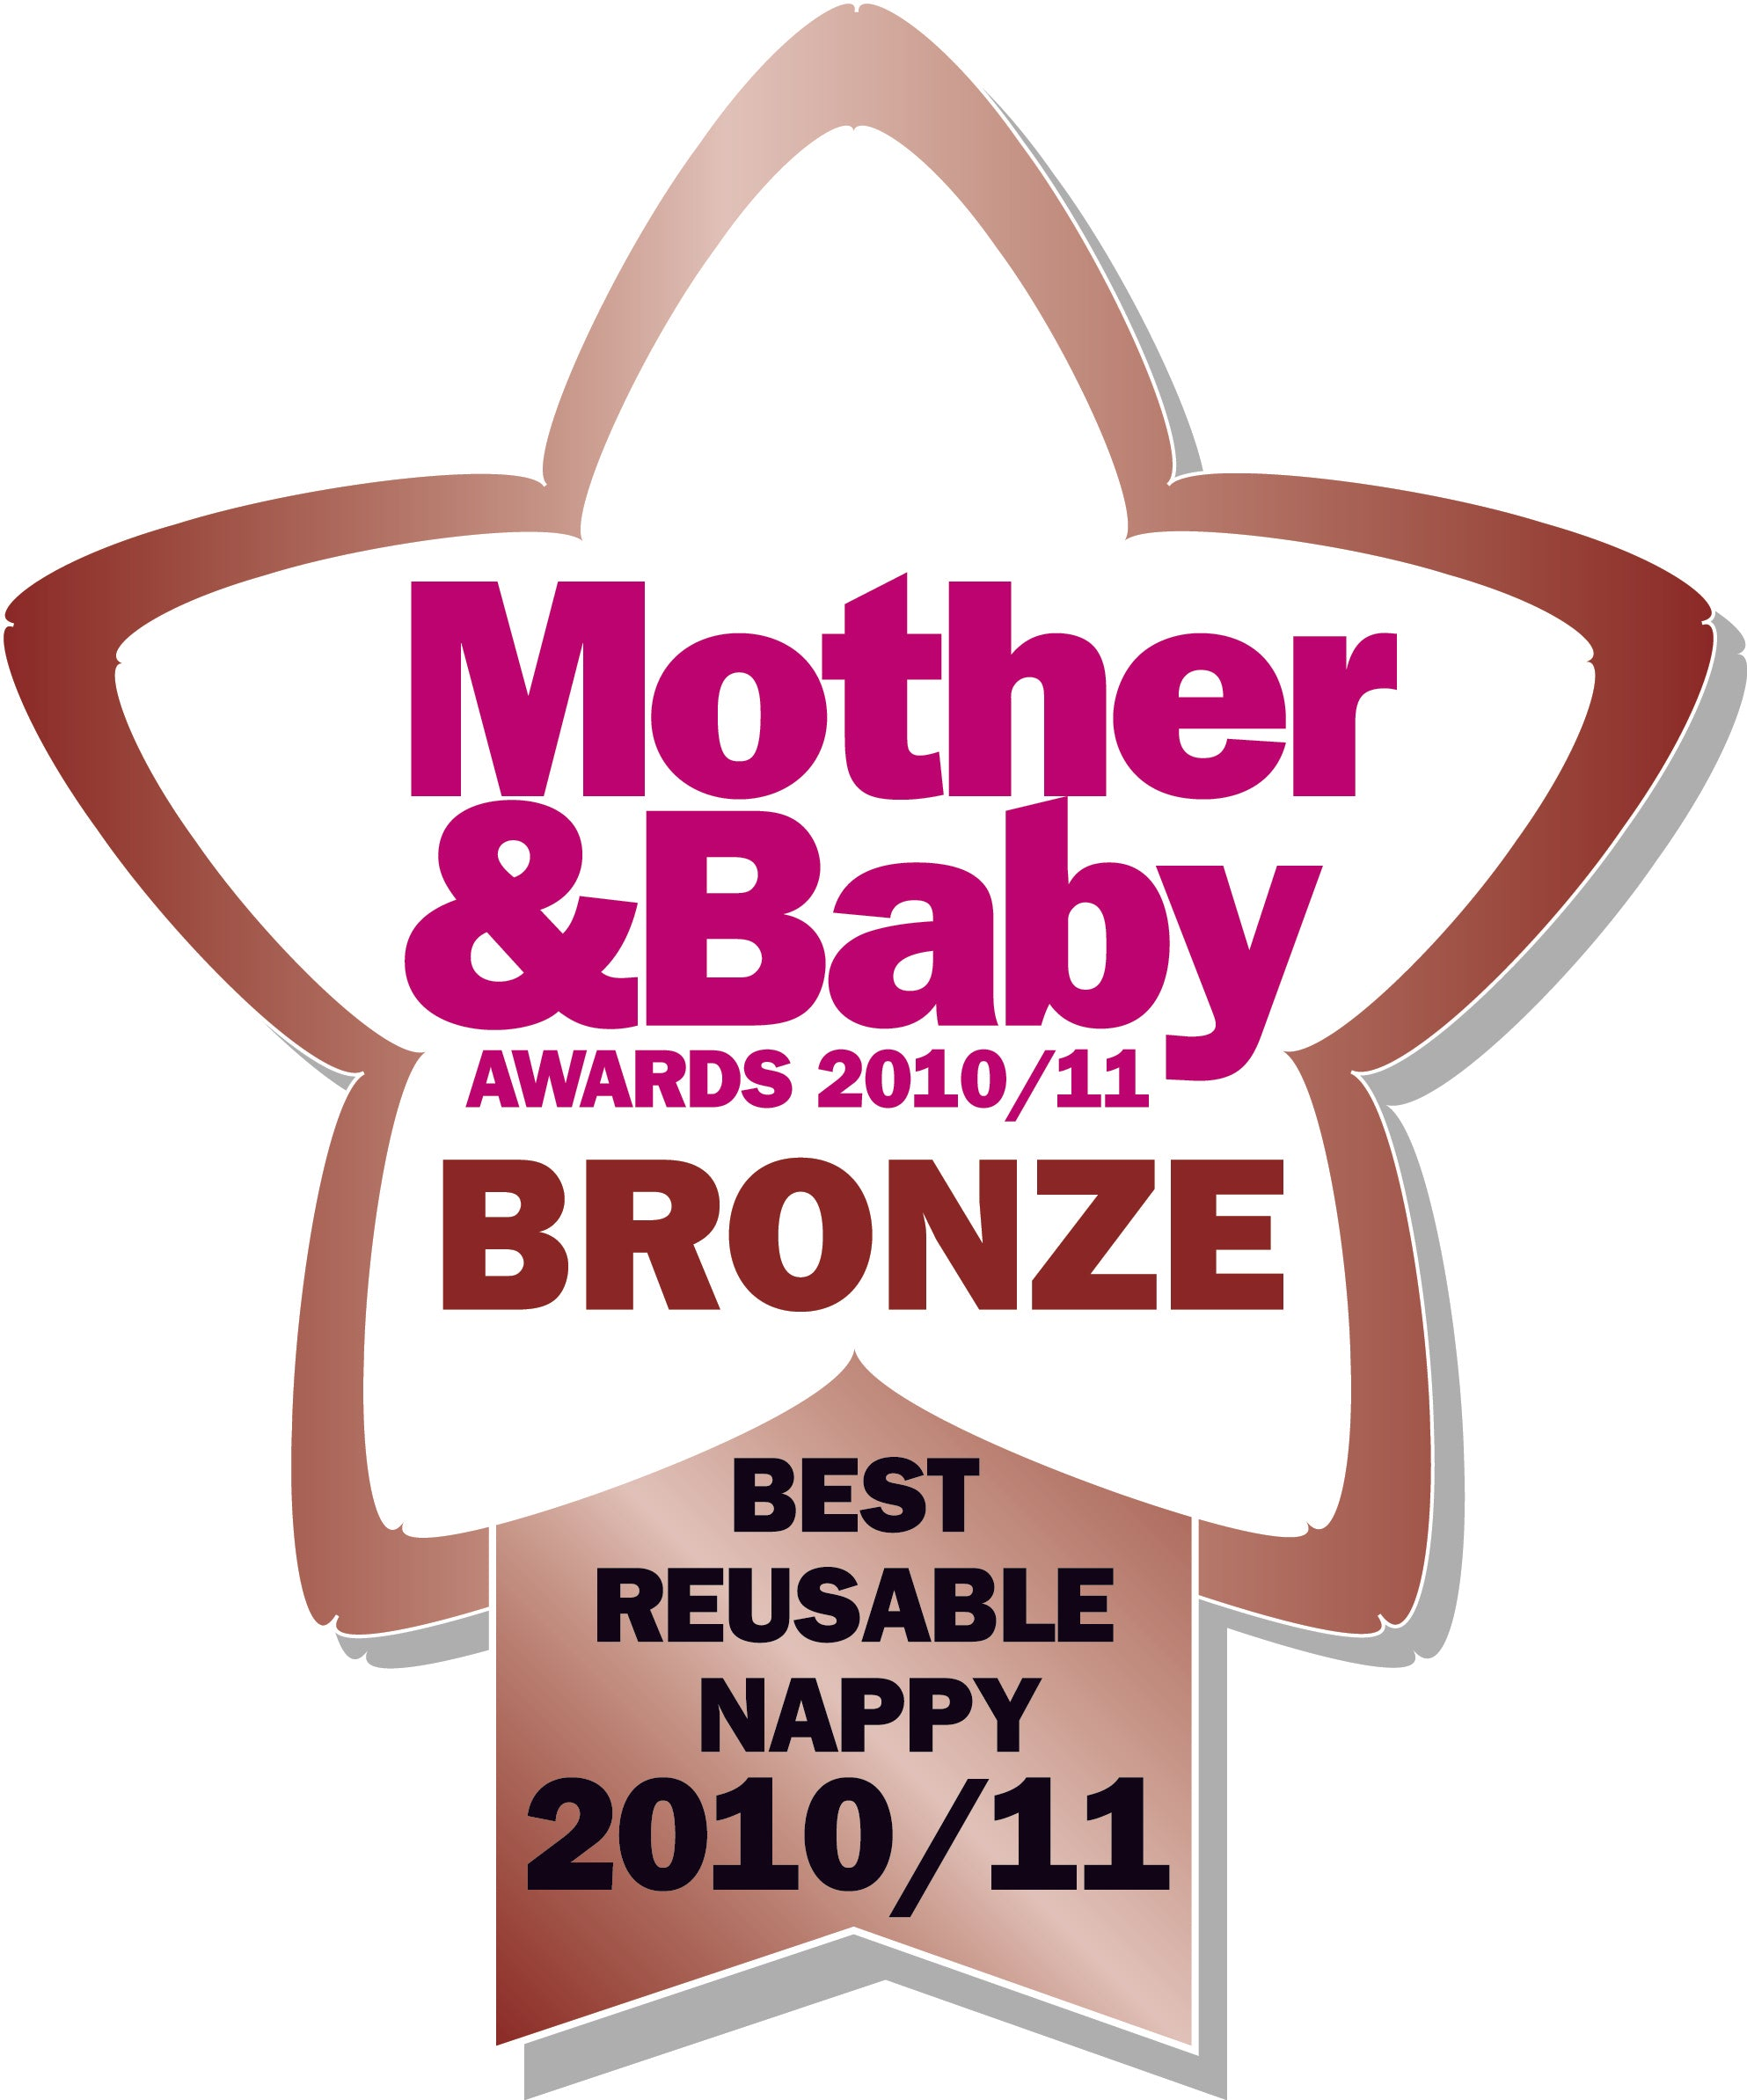 Best Reusable Nappy - Mother and baby Bronze Awards 2010